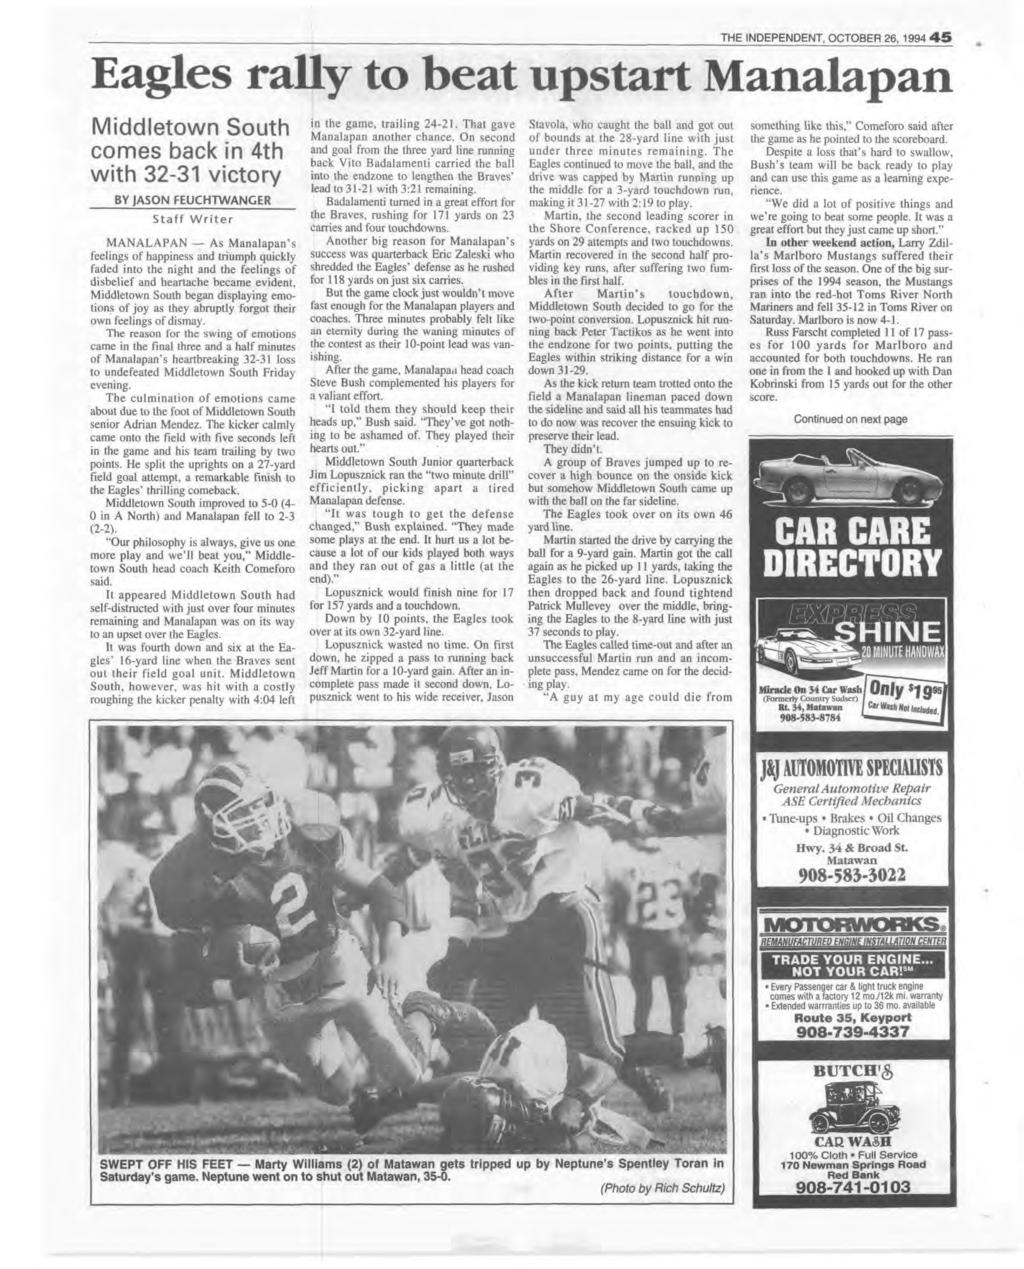 THE NDEPENDENT, OCTOBER 26, 1994 4 5 Eagles rally to beat upstart Manalapan Middletown South comes back in 4th with 32-31 victory BY JASON FEUCHTW ANGER Staff W riter MANALAPAN As Manalapan s